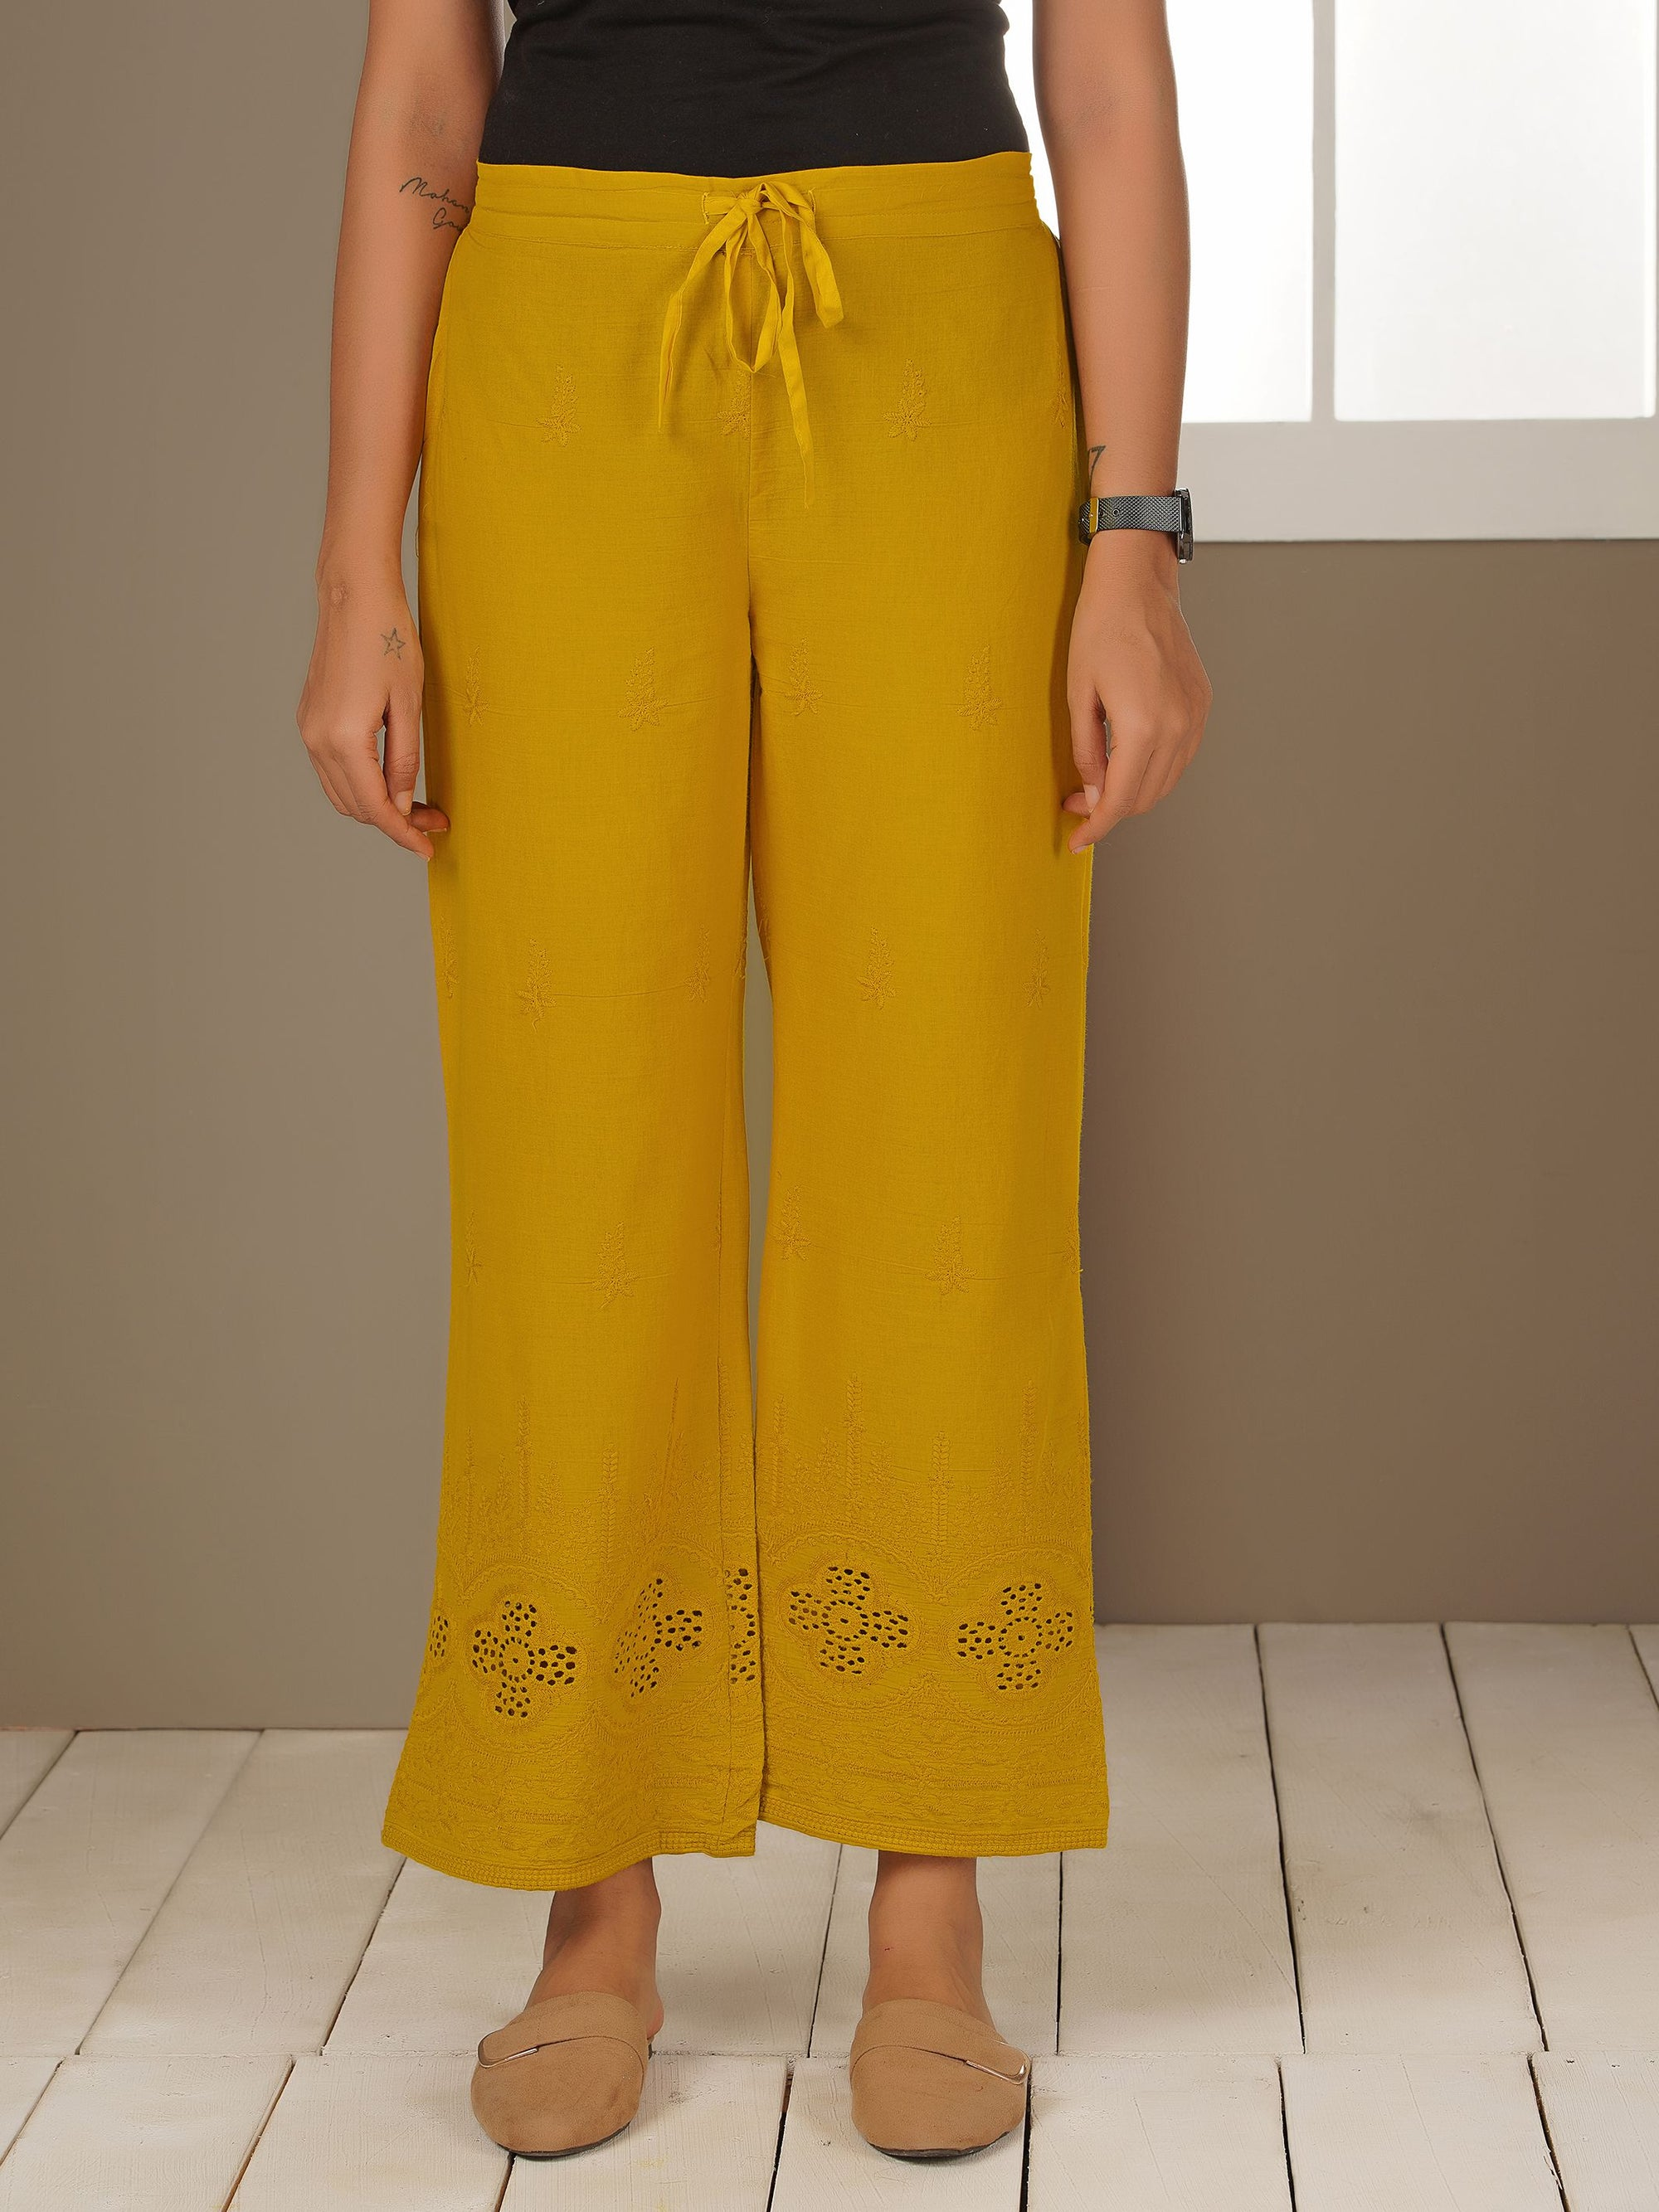 Floral Embroidered Schiffli Palazzo Pants - Mustard